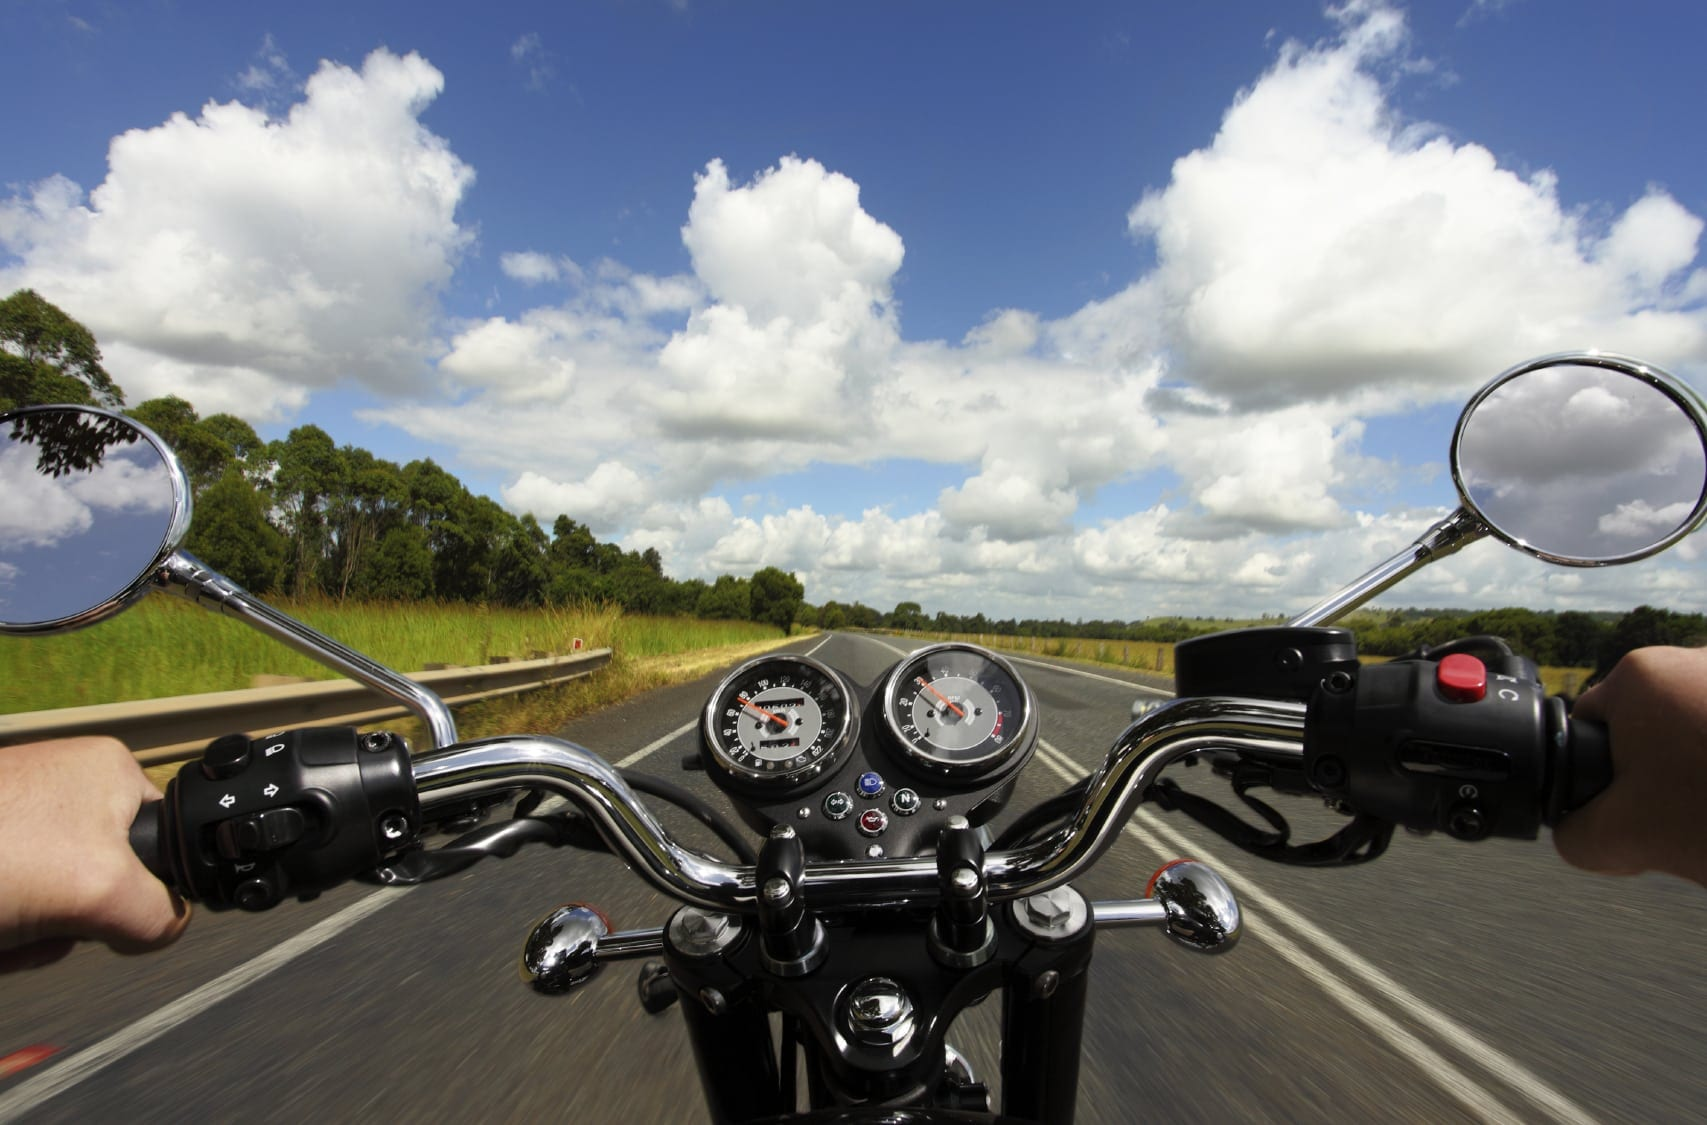 Man Riding A Motorcycle On A Rural Highway During The Summer